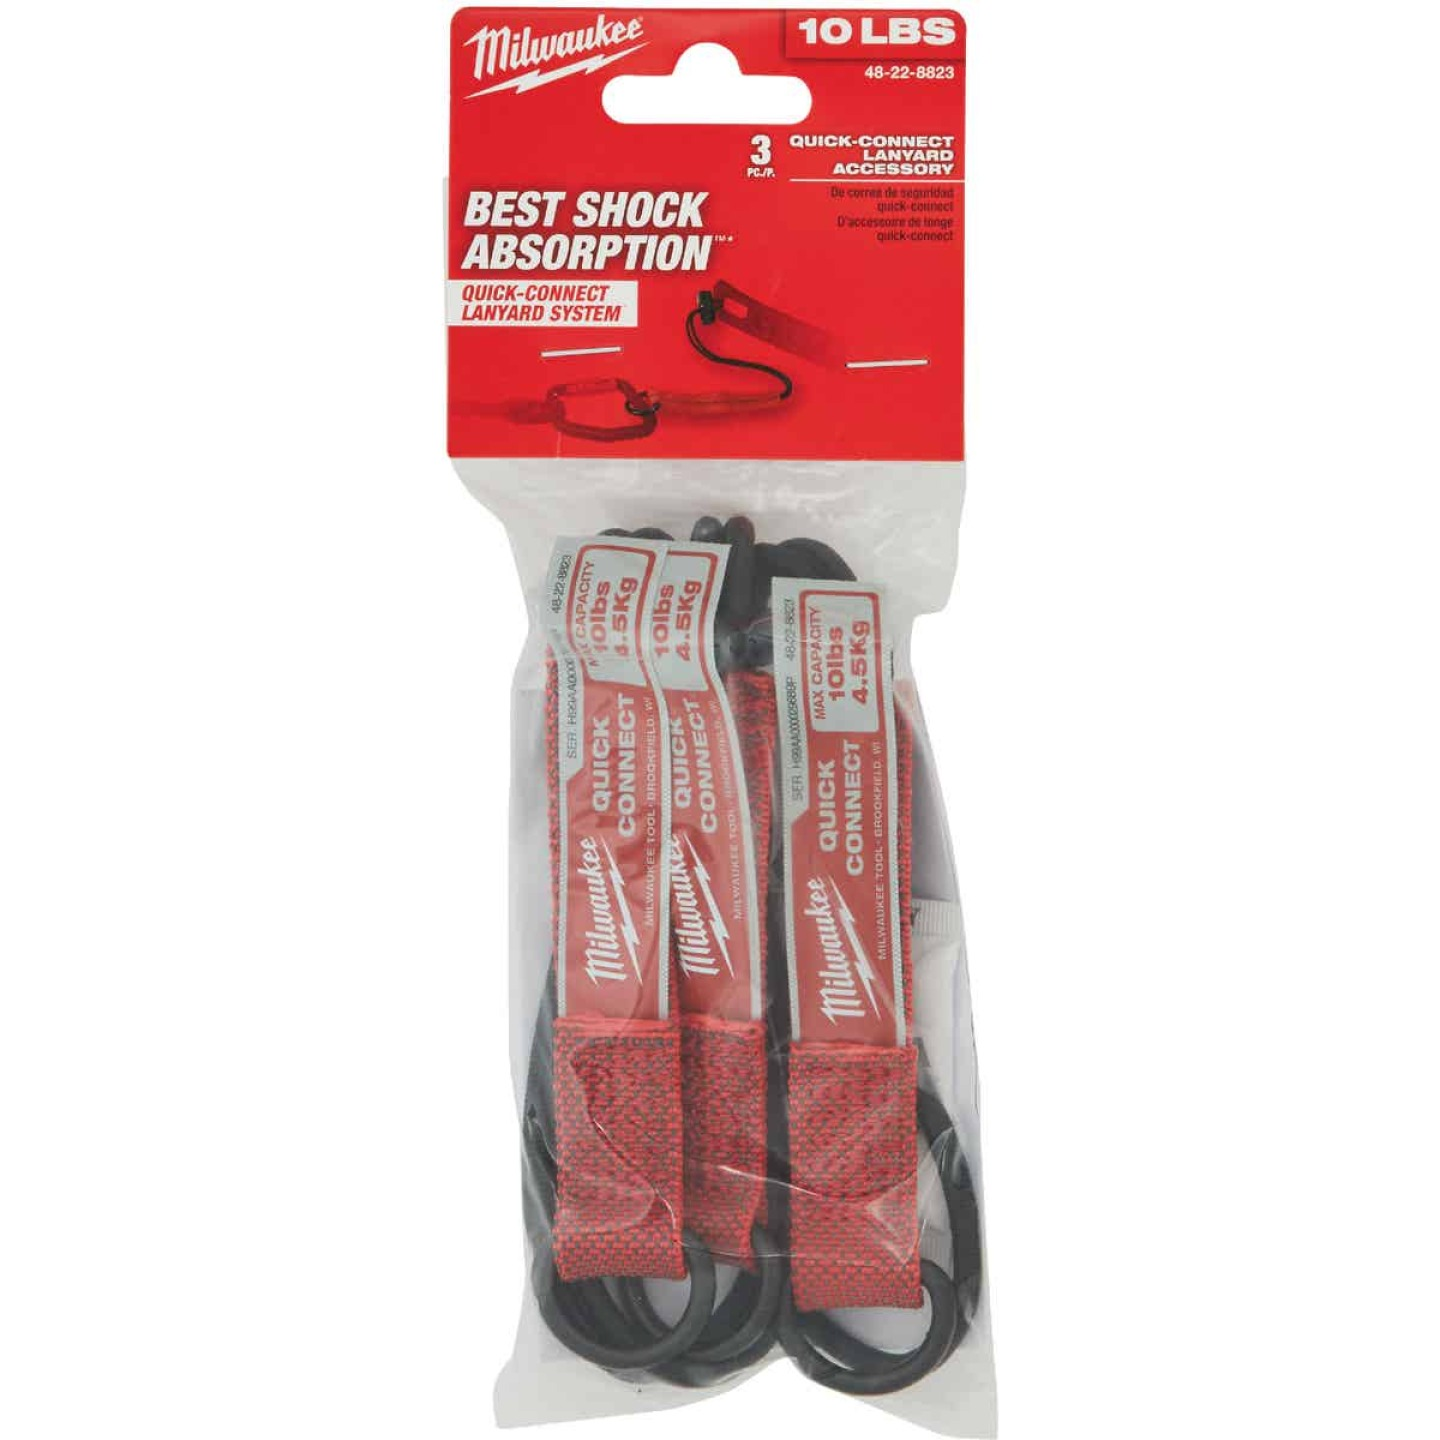 Milwaukee 10 Lb. Quick-Connect Tool Lanyard Accessory (3-Piece) Image 2